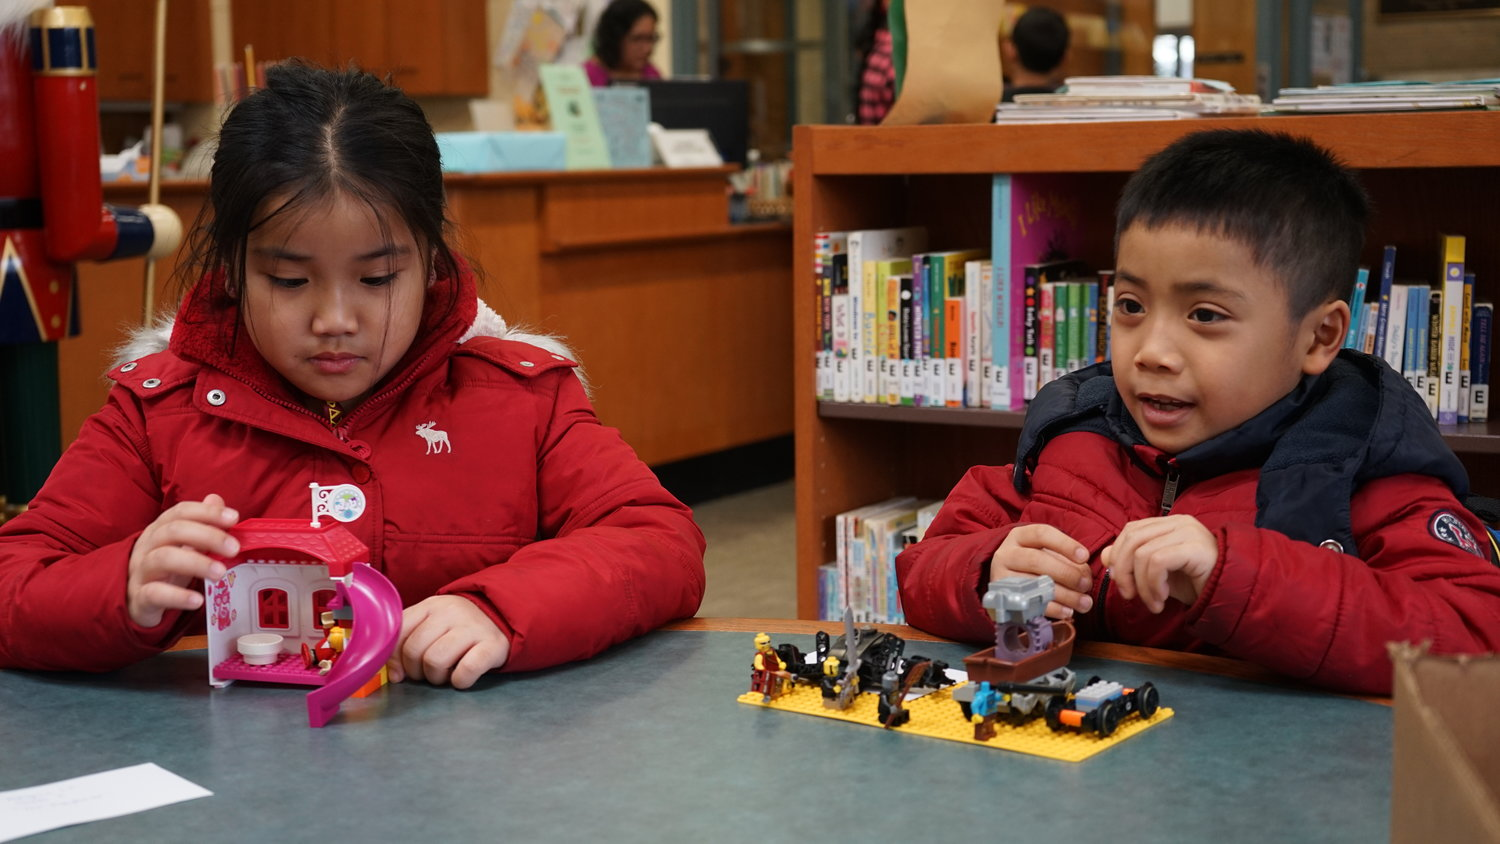 Angela Le, 8, built a playhouse and Christopher Le, 7, a battlefield.